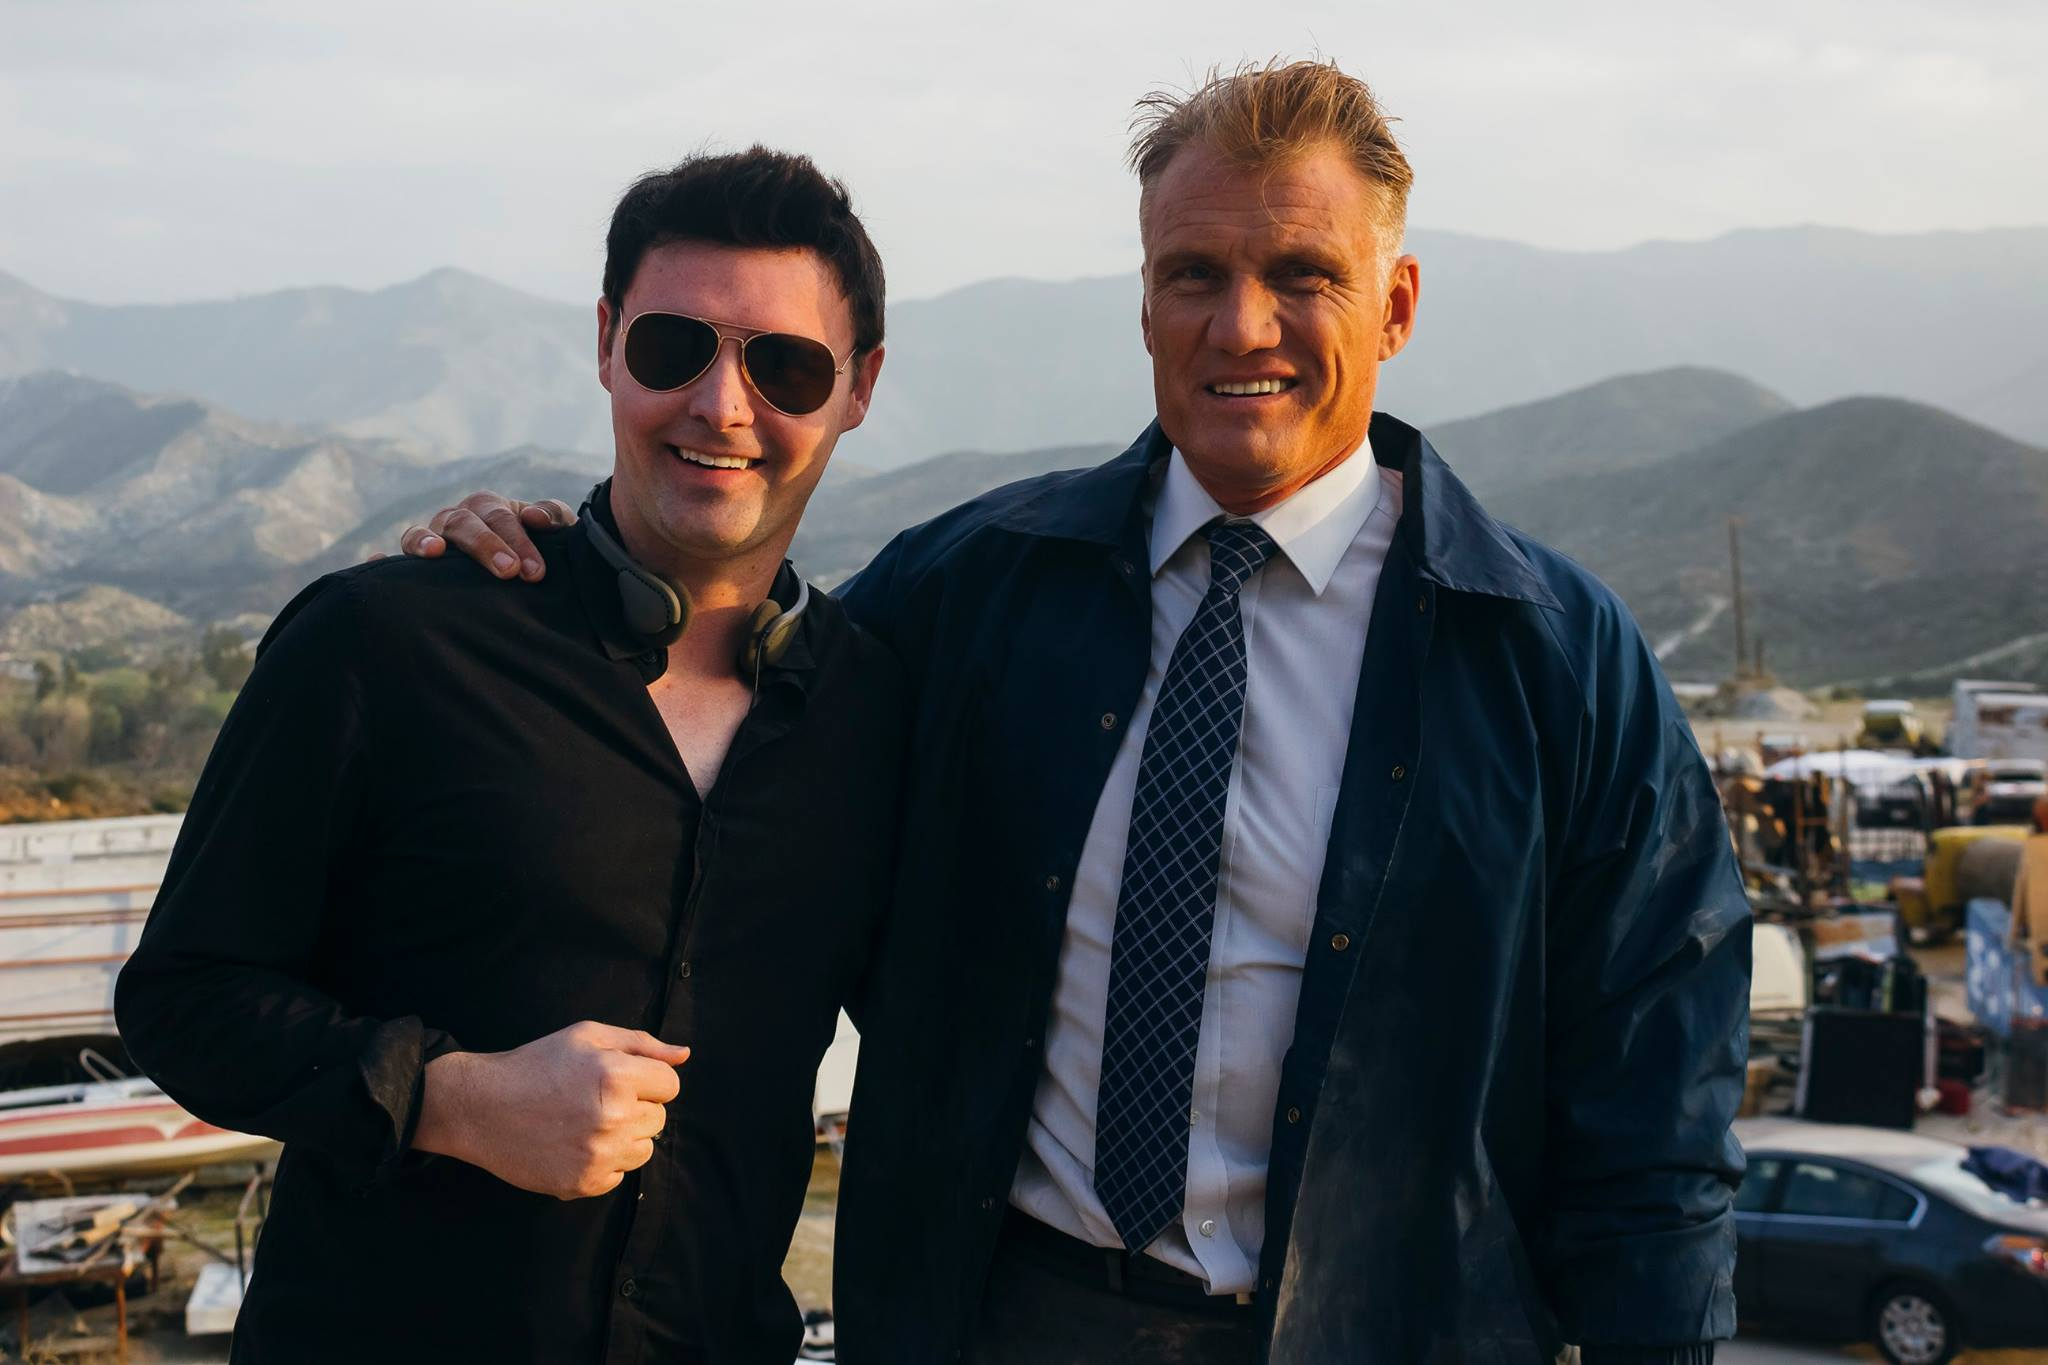 Timothy Woodward Jr and Dolph Lundgren on the set of 4GOT10